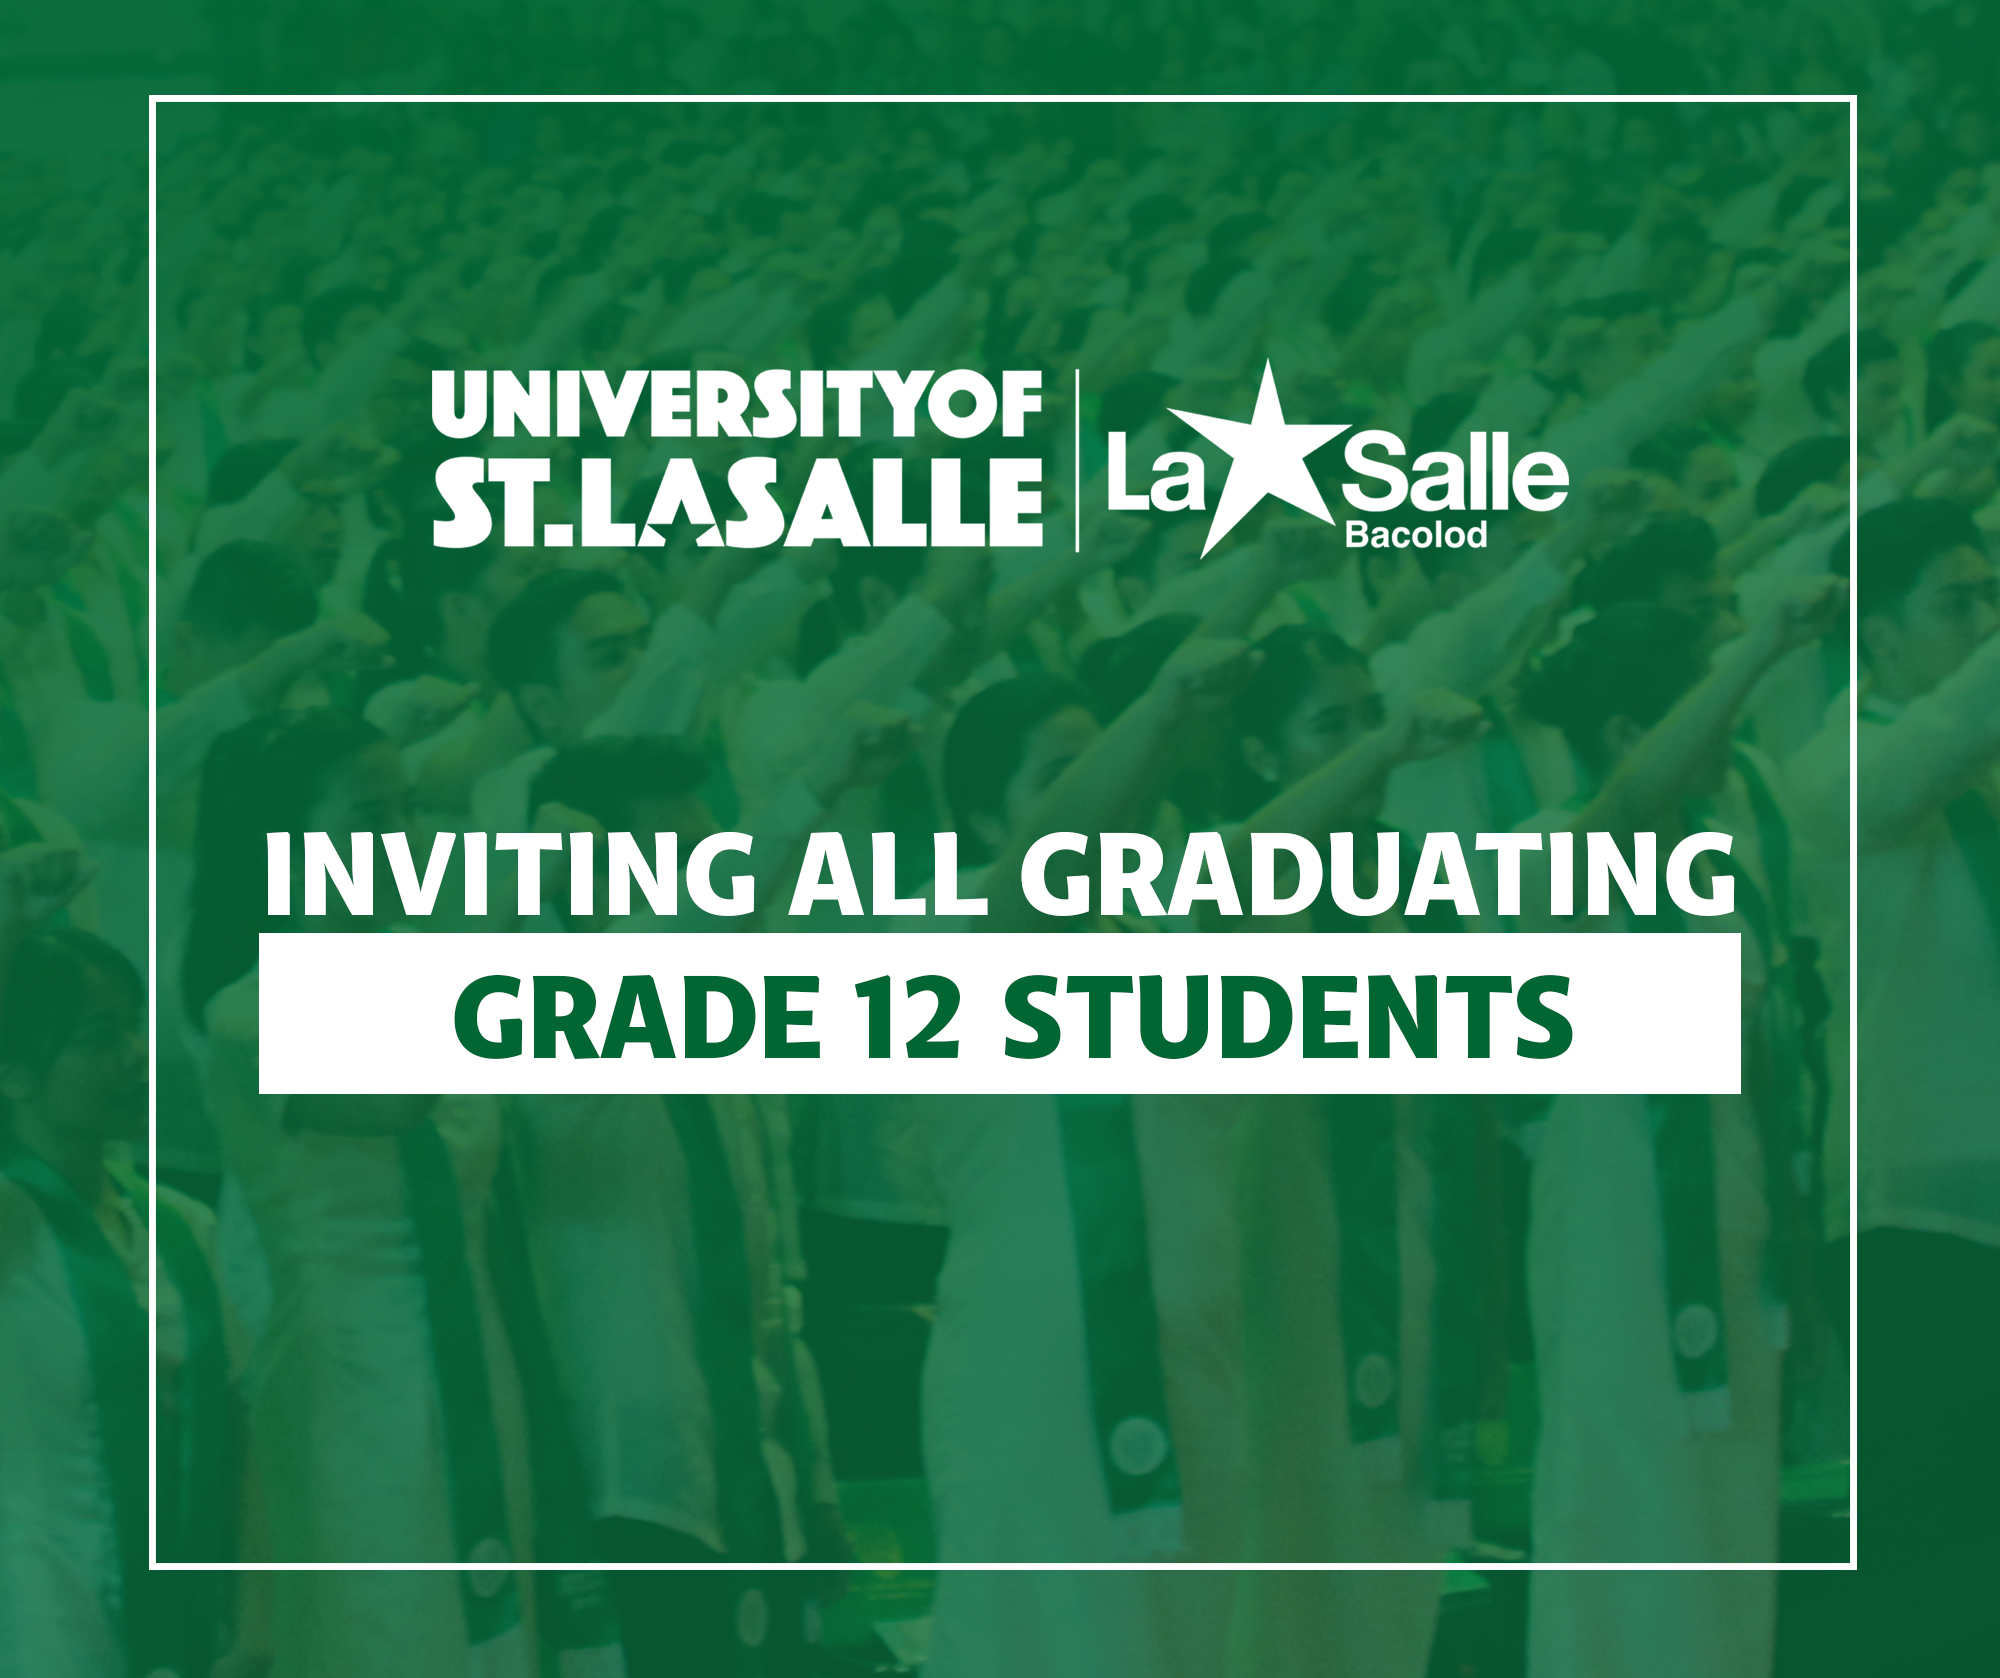 INVITING-ALL-GRADUATING-GRADE-12-STUDENTS.jpg